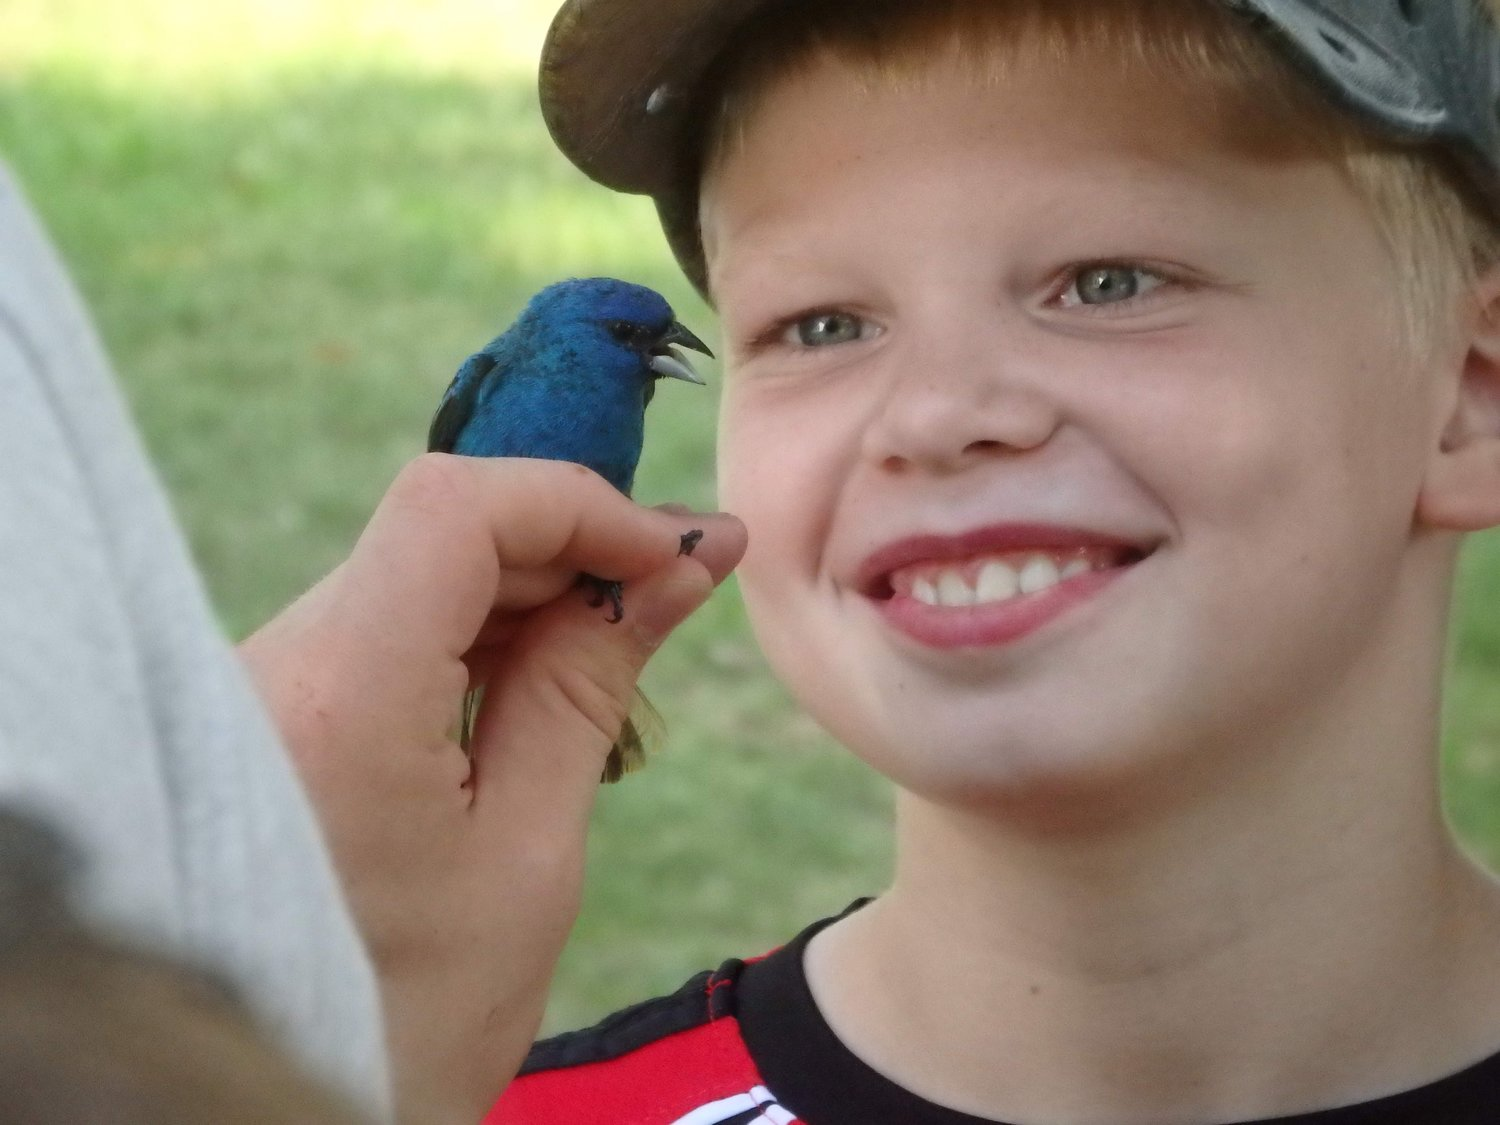 A child gets up close with an Indigo Bunting during a bird banding demonstration at the Audubon Nature Center and Aquarium.